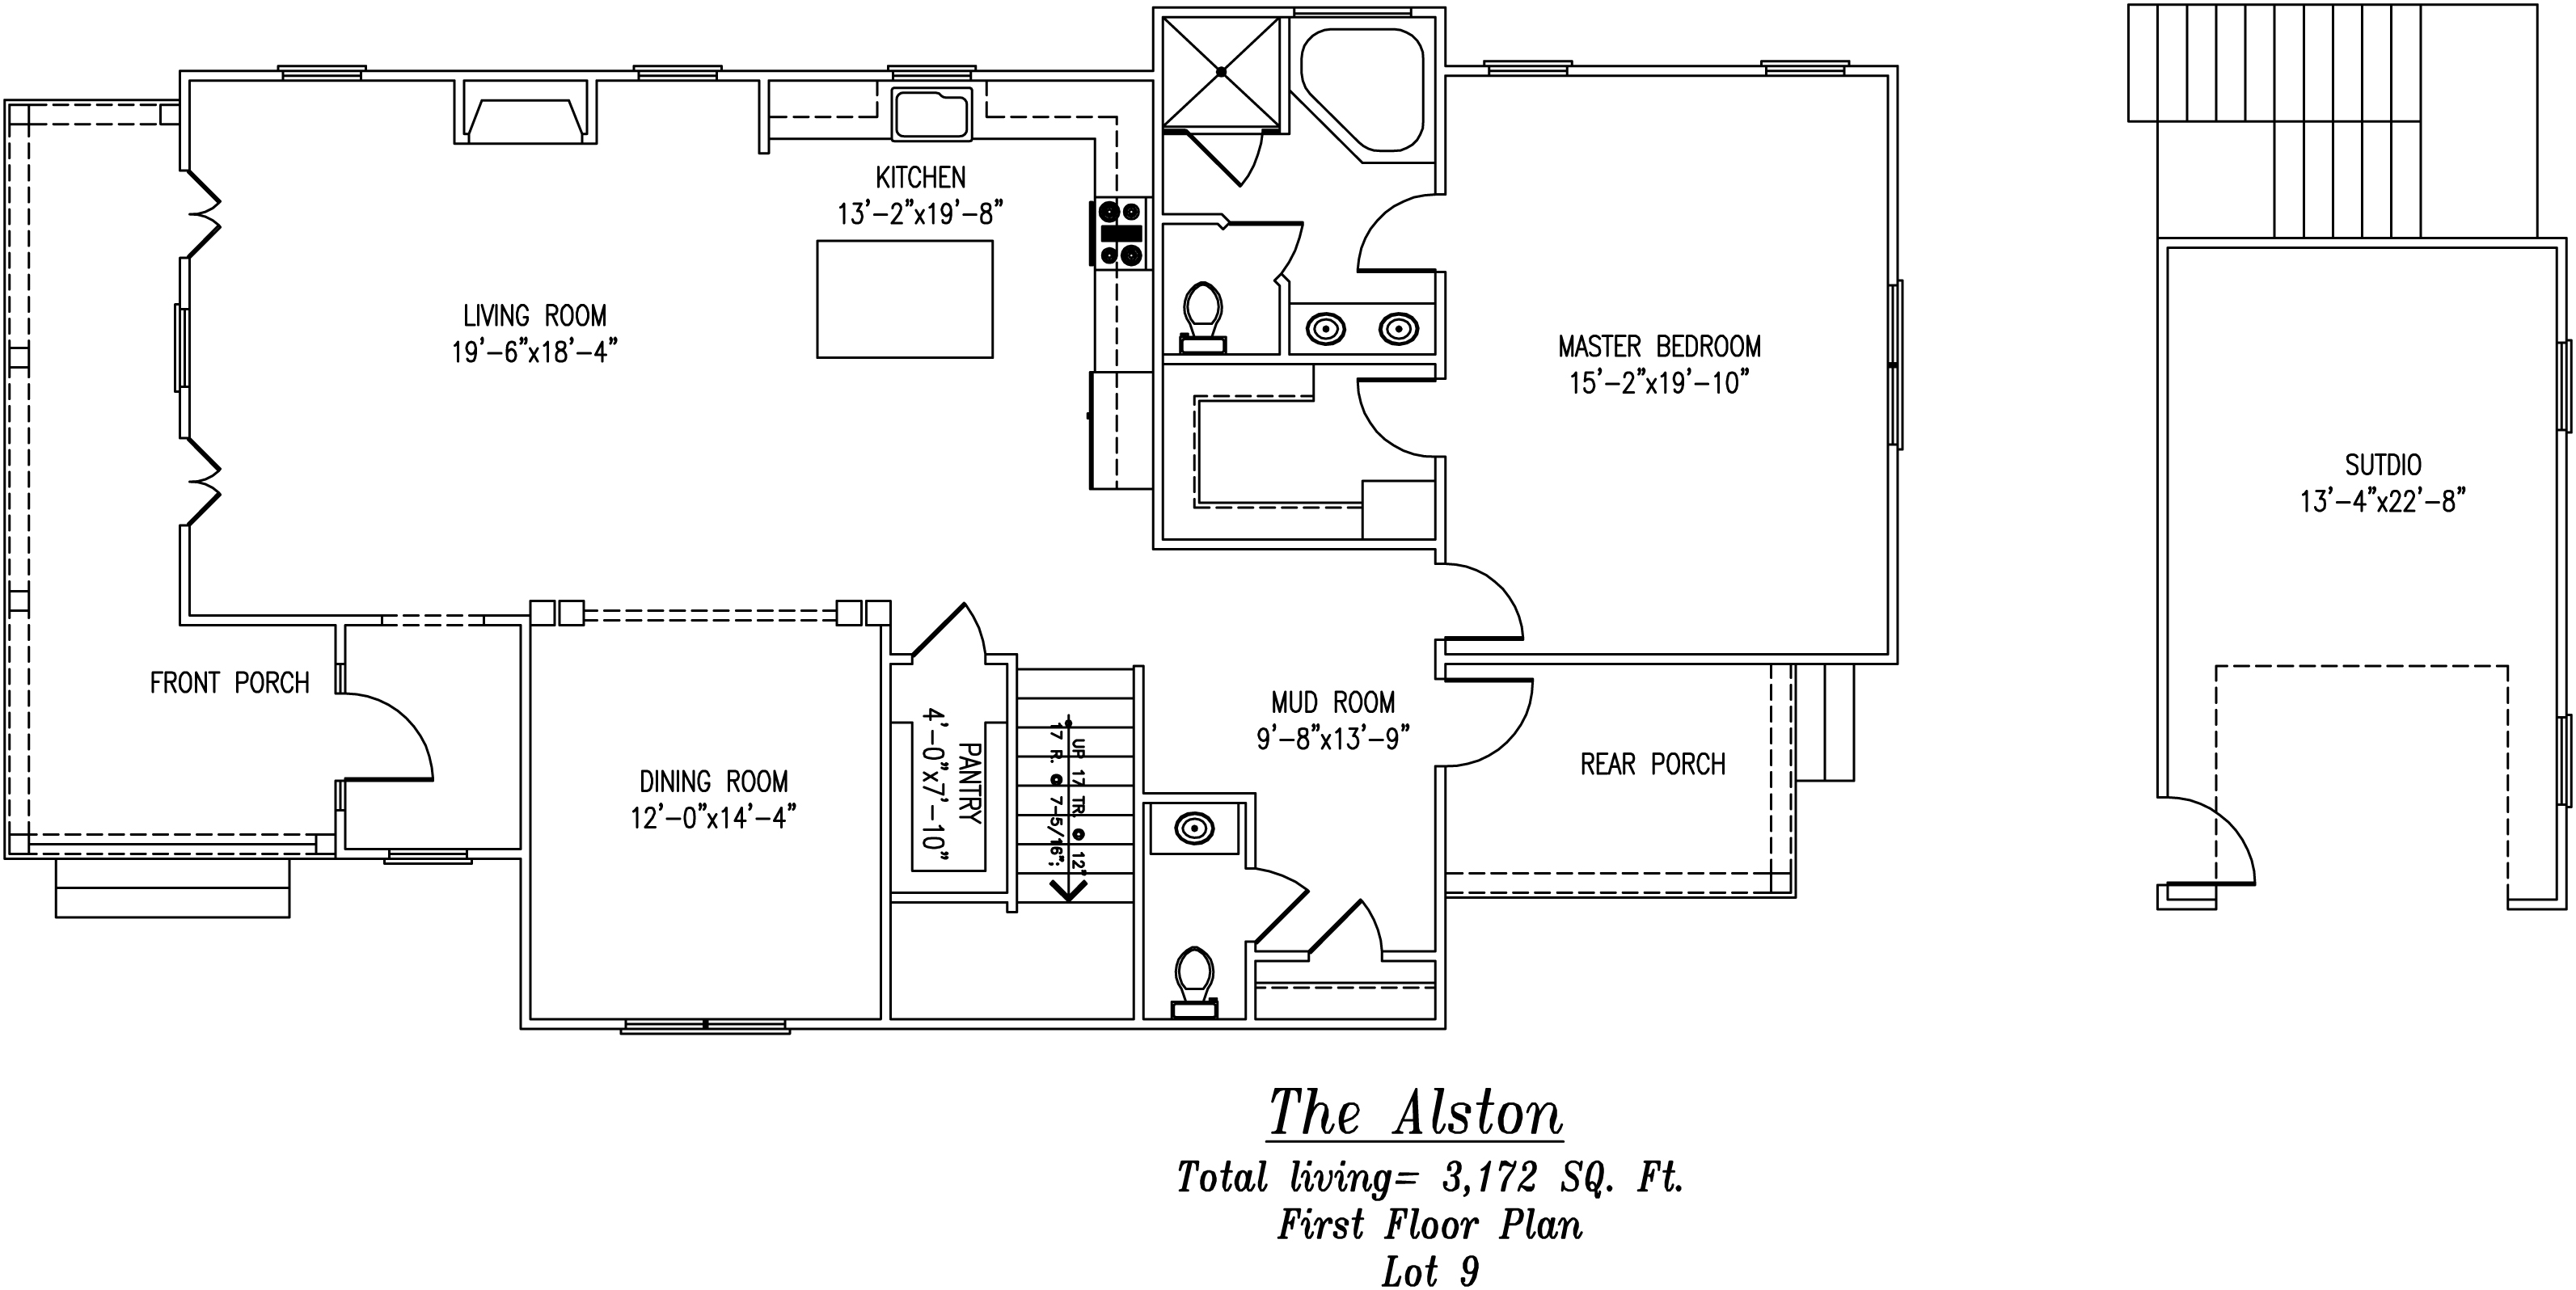 Alston First Floor Plan